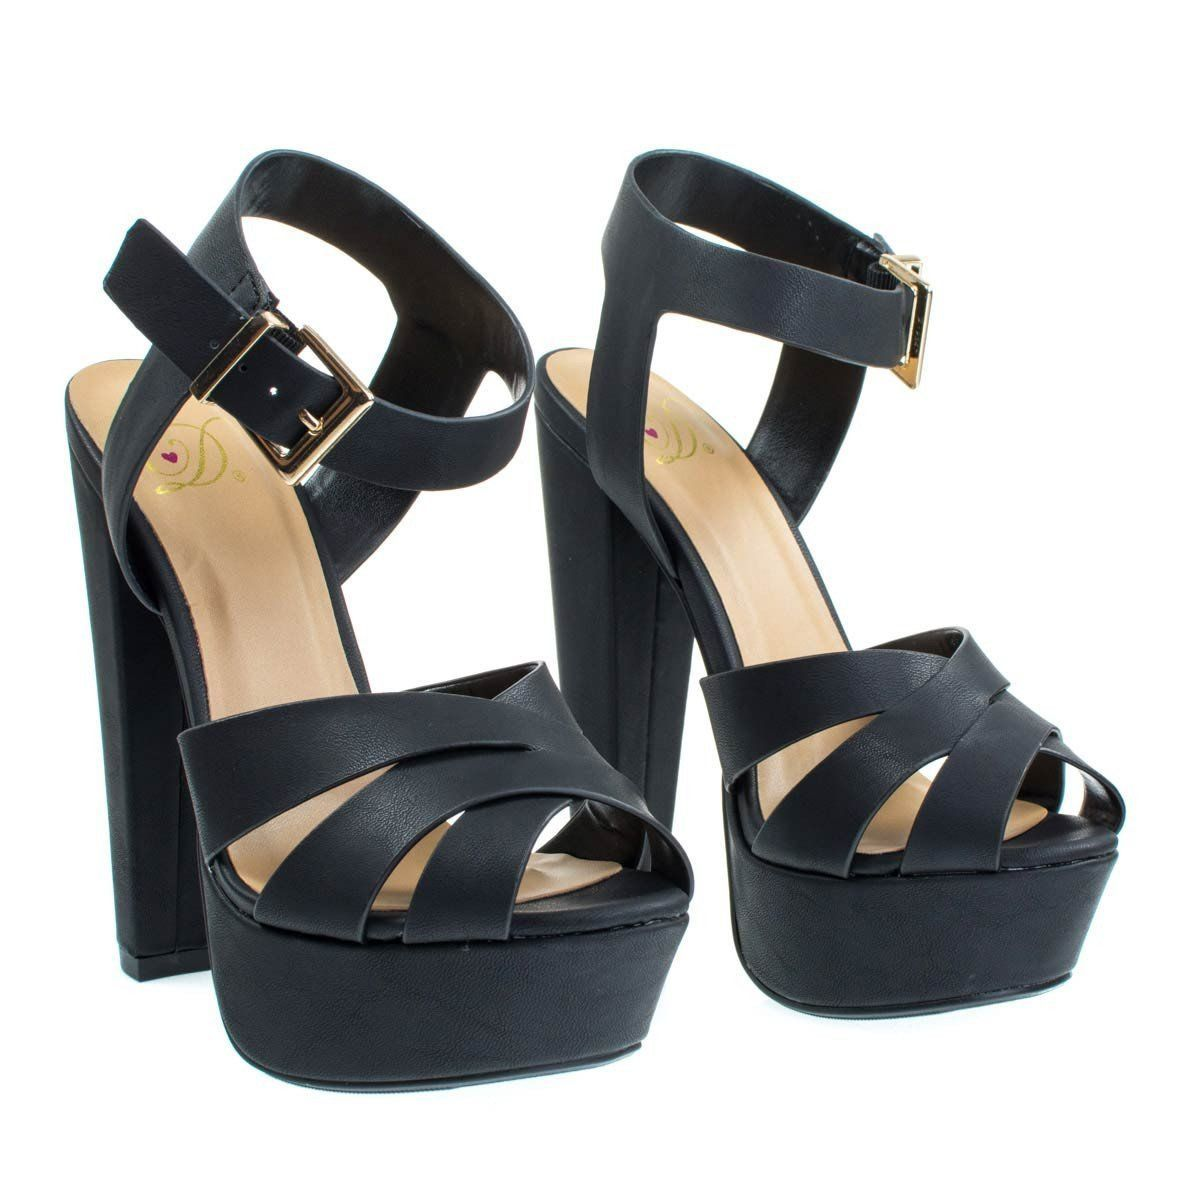 4ba7cd74b51 About This Shoes  Stand tall and proud with these towering high platform  sandal featuring a